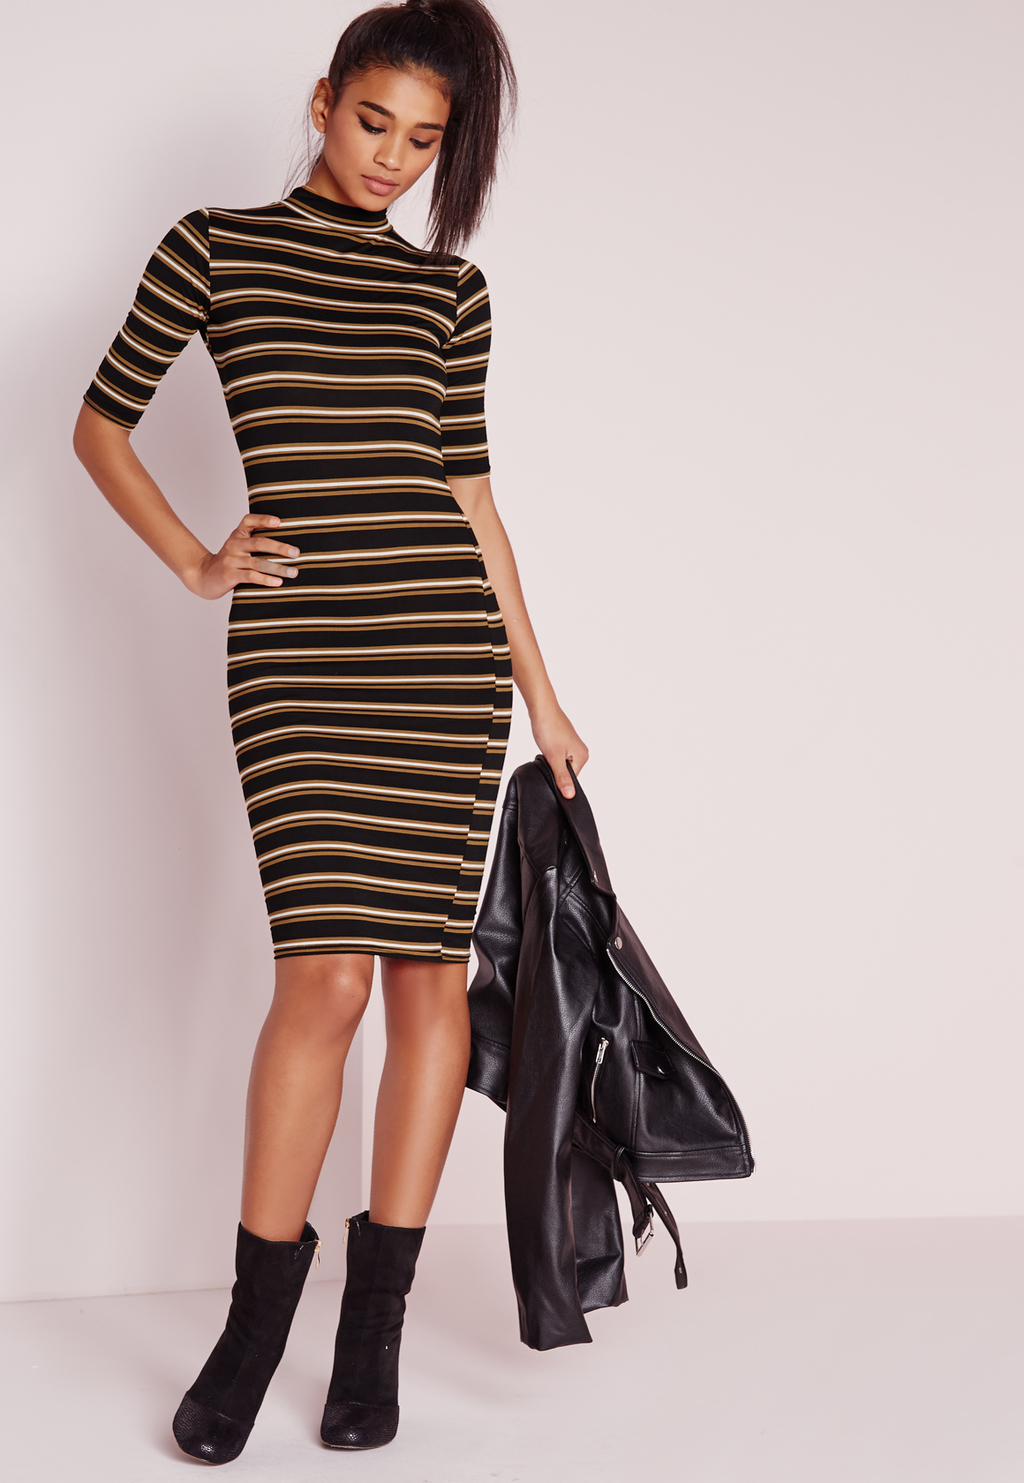 High Neck Stripe Midi Dress Camel, Black - fit: tight; pattern: horizontal stripes; neckline: high neck; style: bodycon; predominant colour: black; occasions: evening, creative work; length: just above the knee; sleeve length: half sleeve; sleeve style: standard; texture group: jersey - clingy; pattern type: fabric; fibres: viscose/rayon - mix; multicoloured: multicoloured; season: s/s 2016; wardrobe: highlight